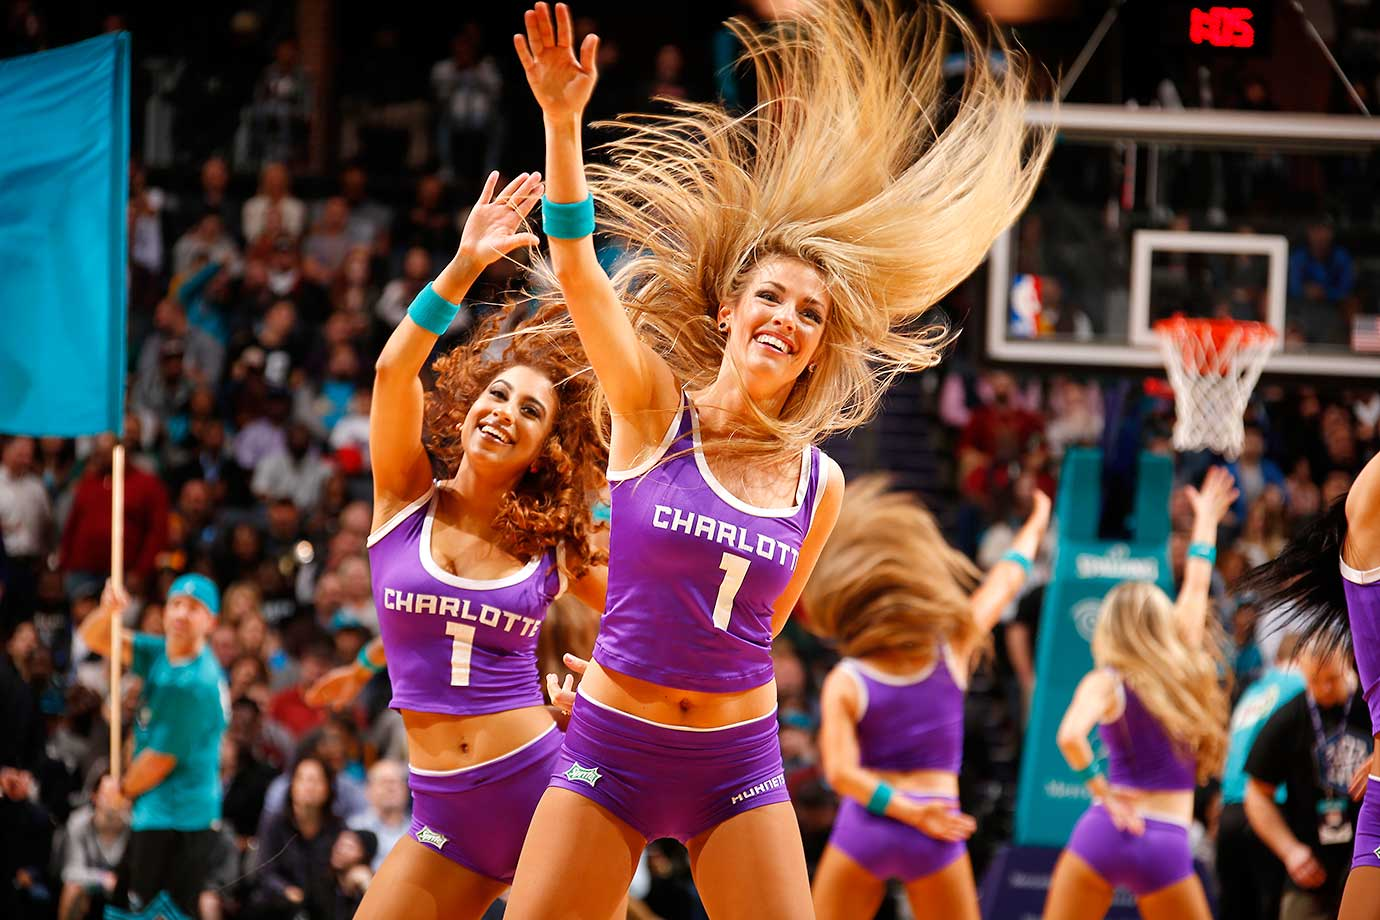 The Charlotte Hornets dancers perform their routine during the game against the Cleveland Cavaliers at Time Warner Cable Arena in North Carolina.